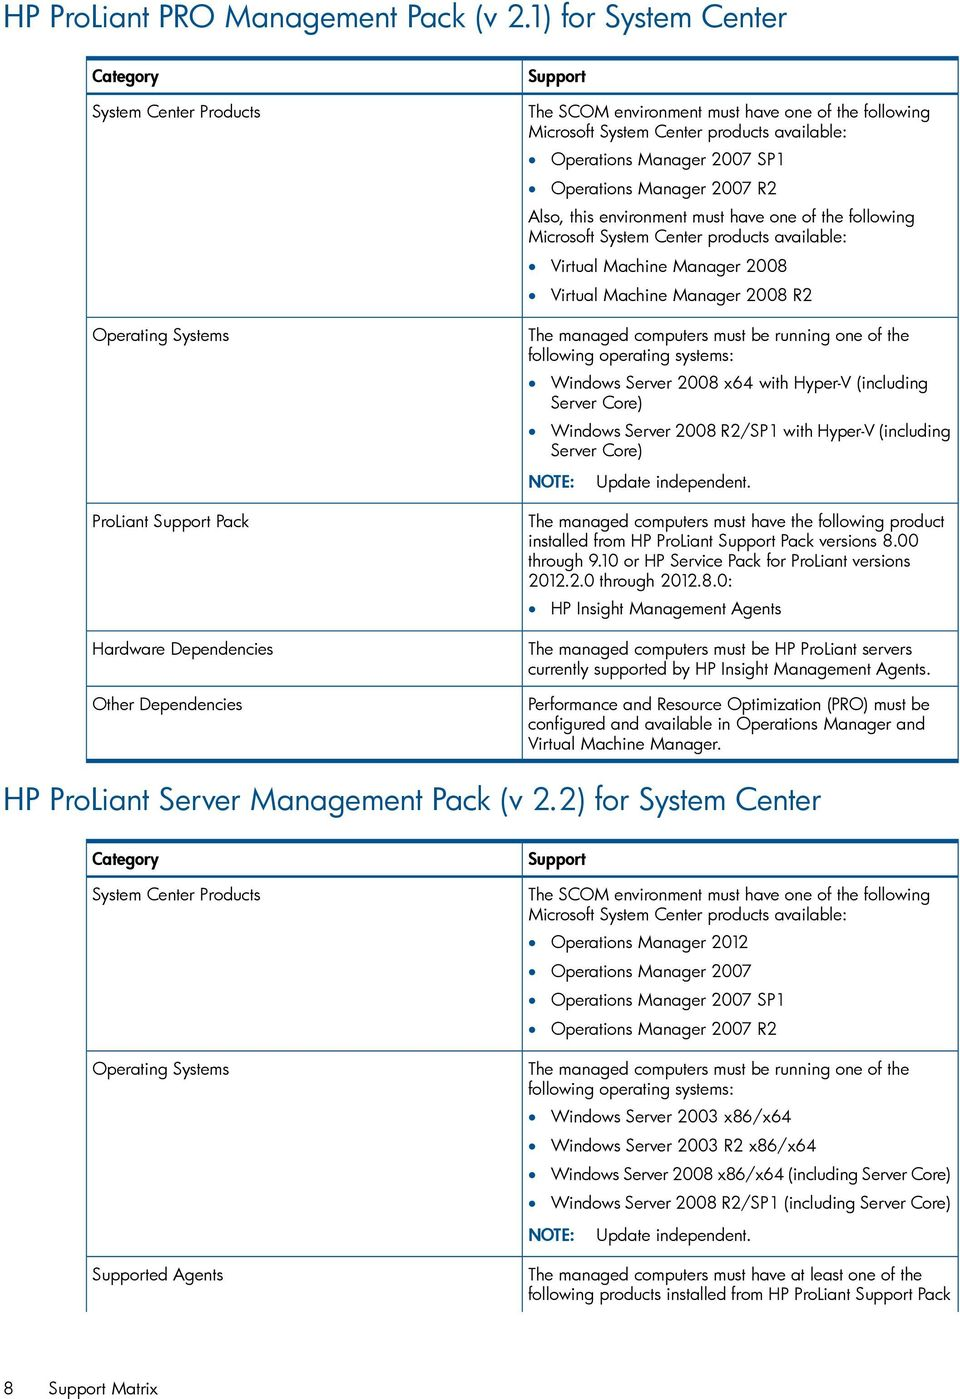 Microsoft System Center products available: Operations Manager 2007 SP1 Operations Manager 2007 R2 Also, this environment must have one of the following Microsoft System Center products available: